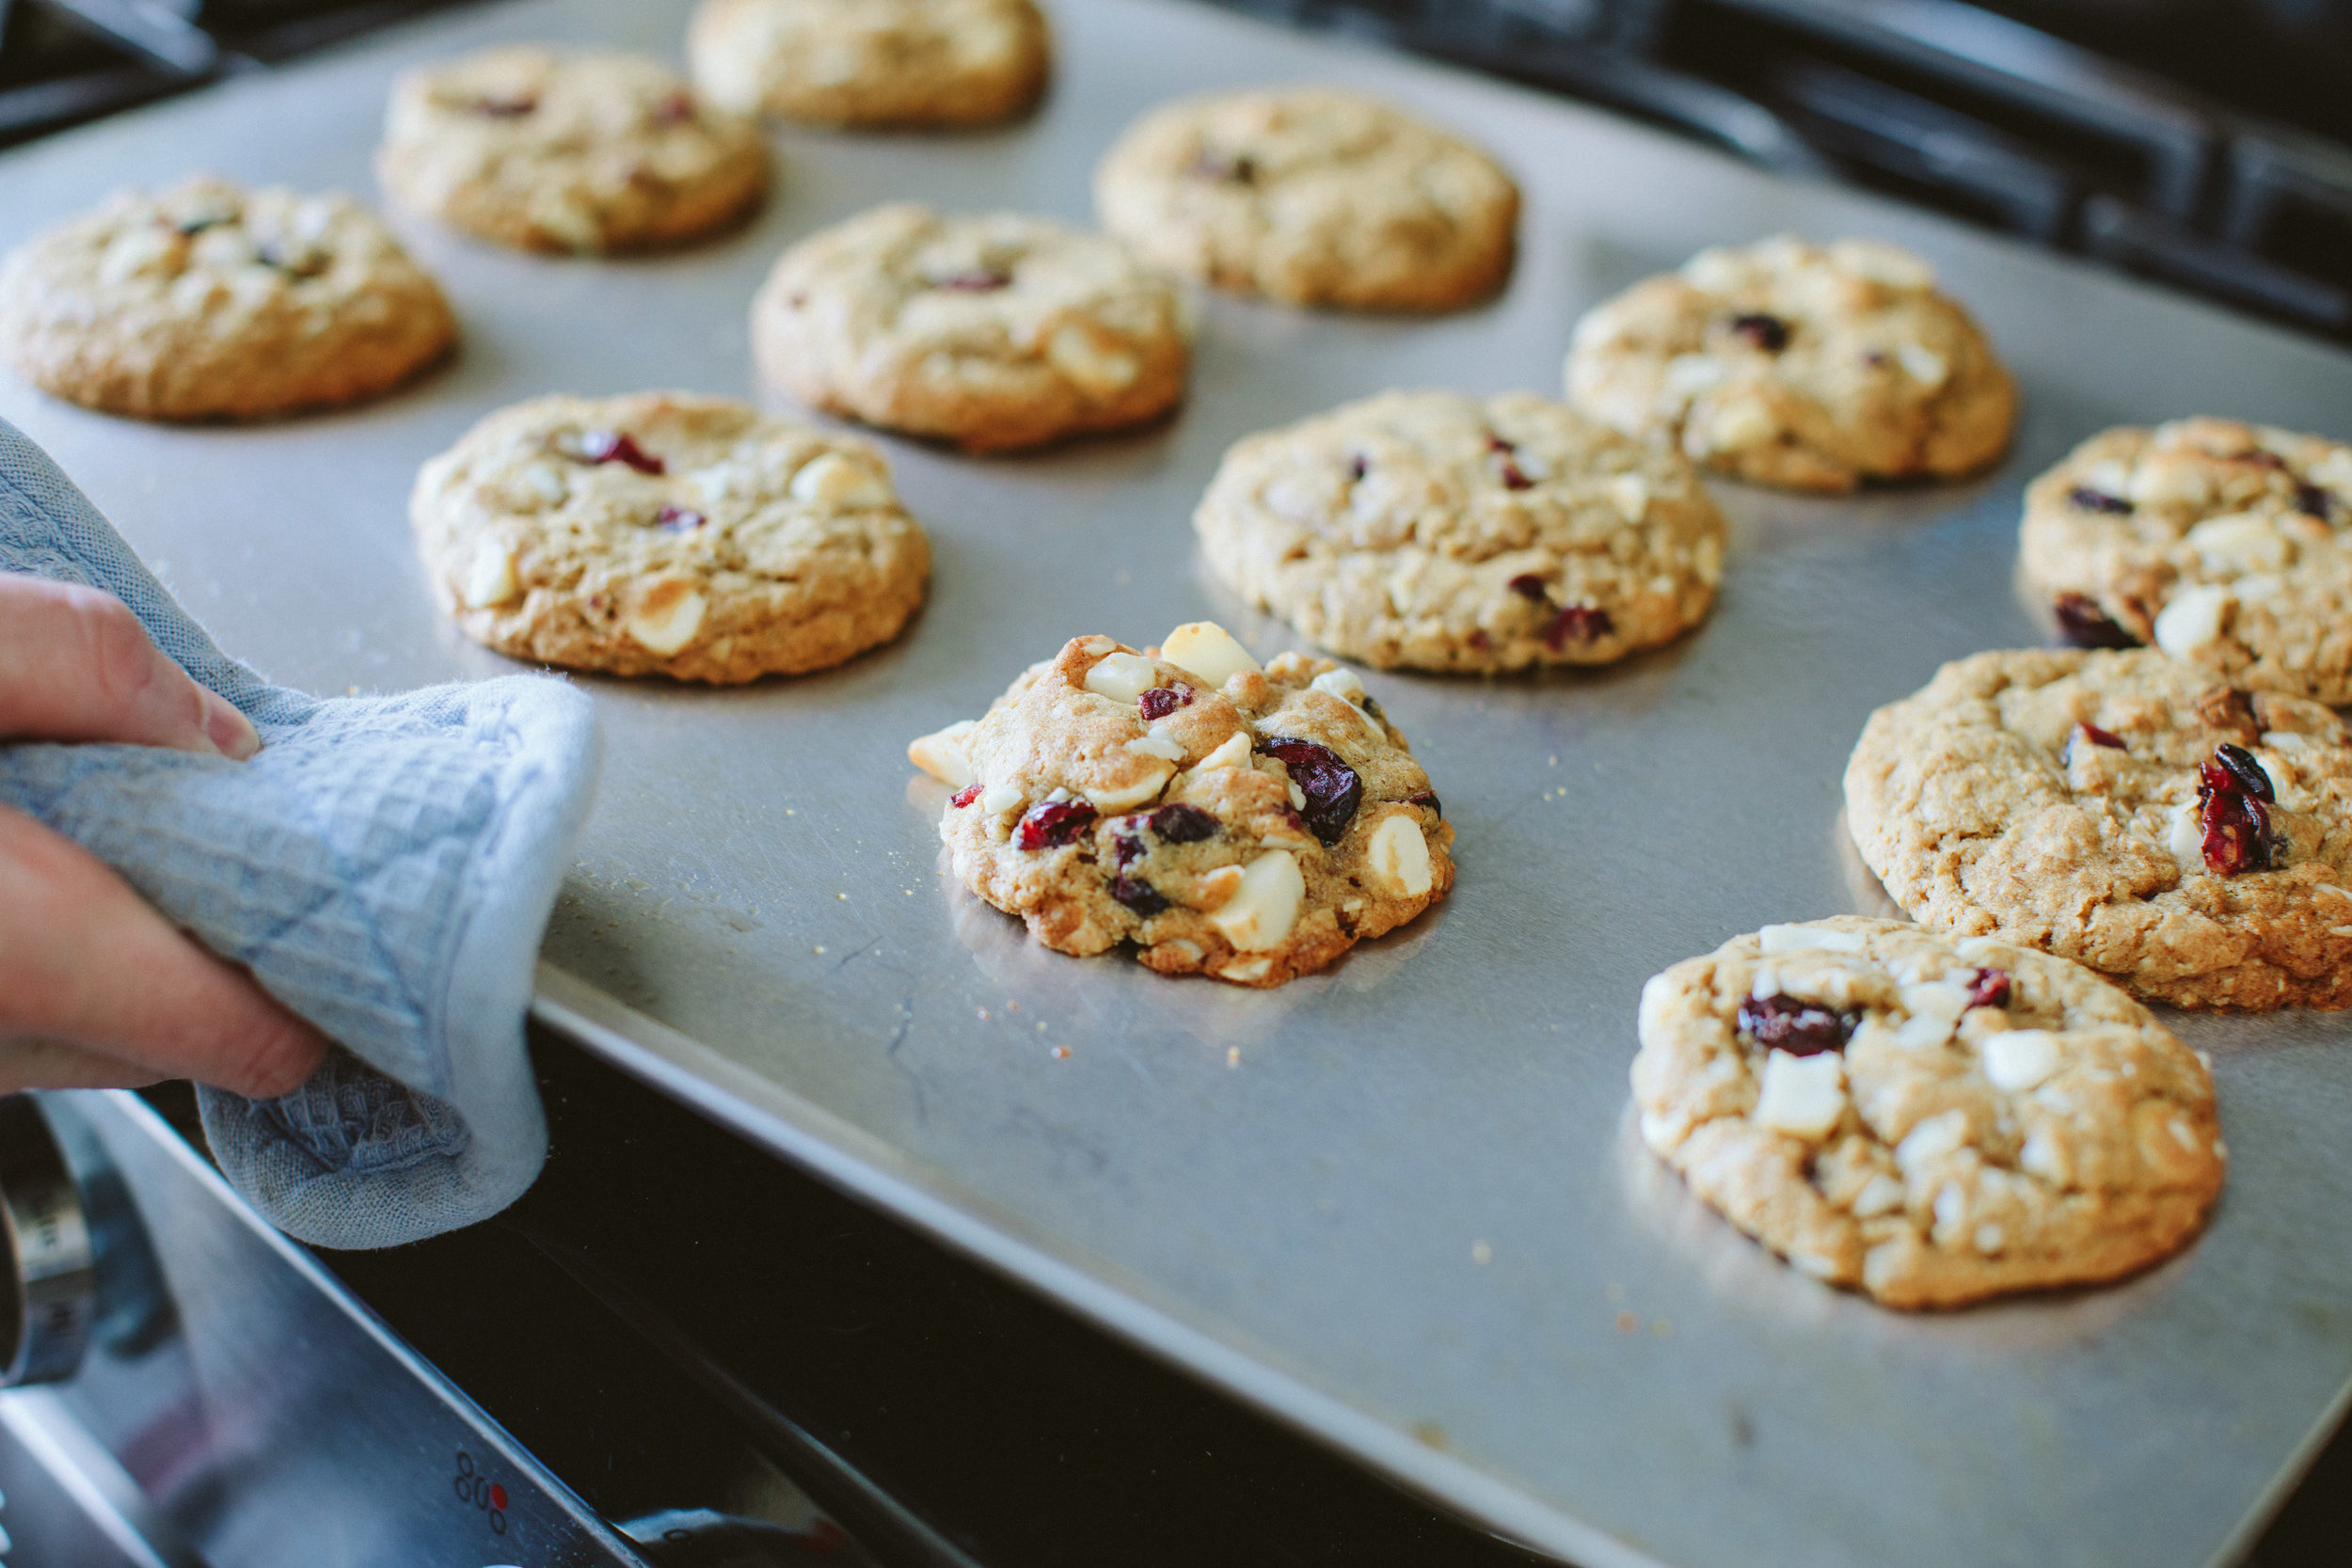 White Chocolate, Cranberry and Macadamia Nut Oatmeal Cookies from A Thought For Food - www.athoughtforfood.net